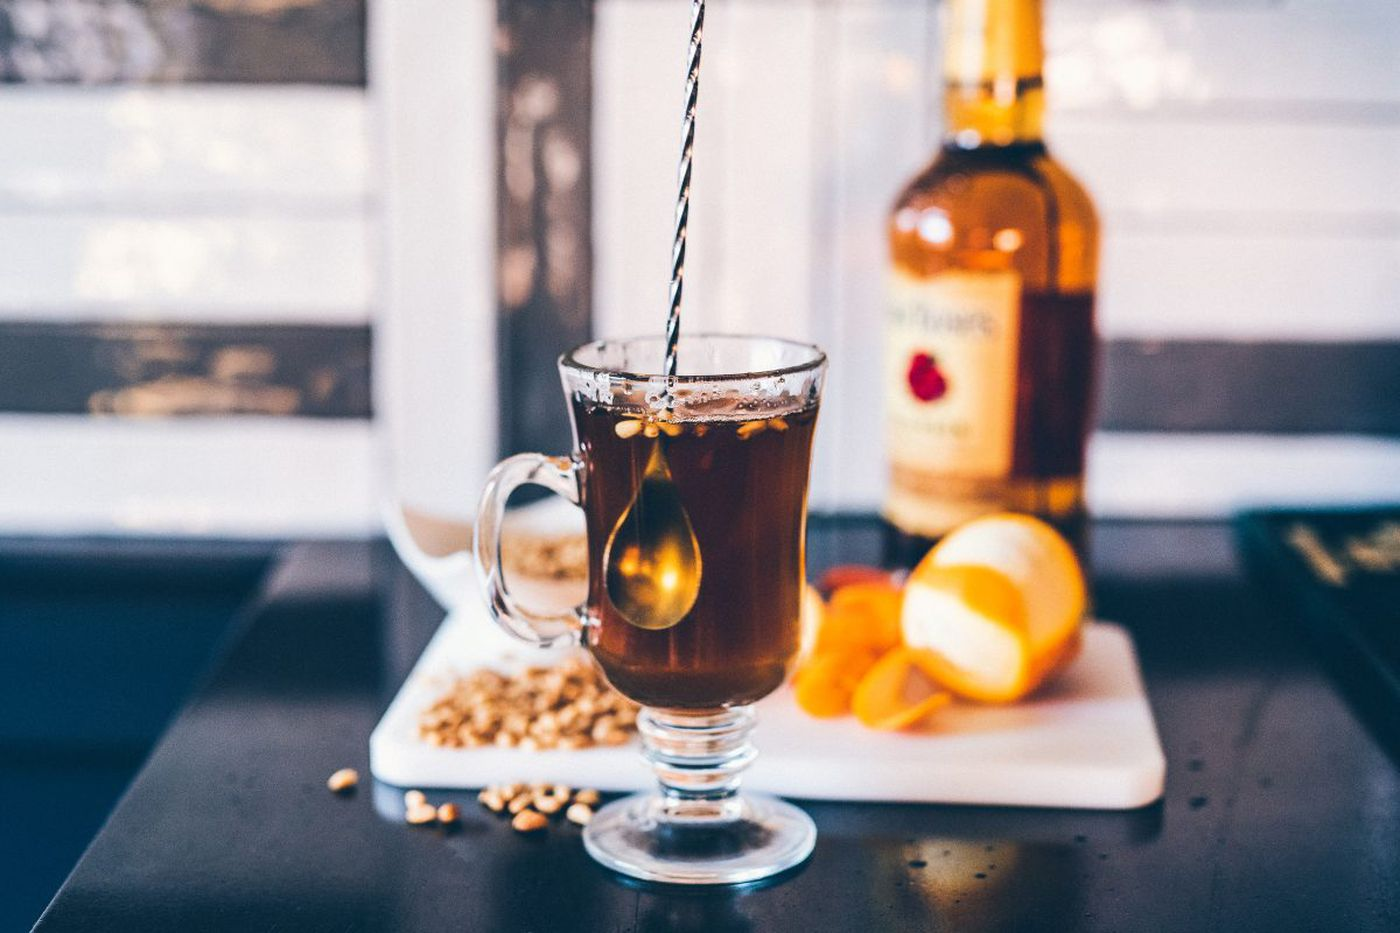 Celebrate the final weeks of winter with a bar crawl for warm cocktail